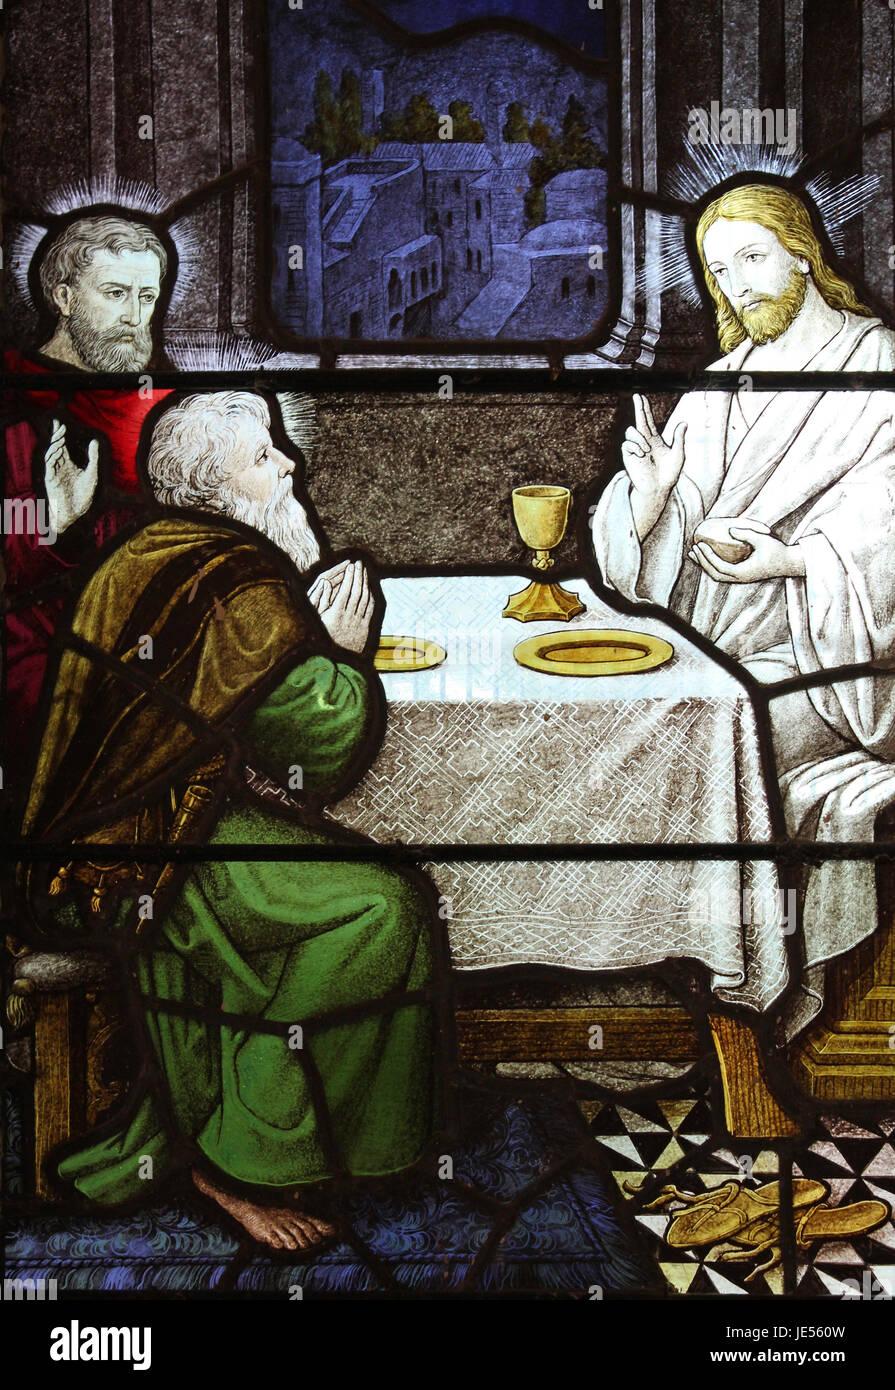 Stained Glass Window In Caerhun Church, Conwy Valley, Wale Stock Photo